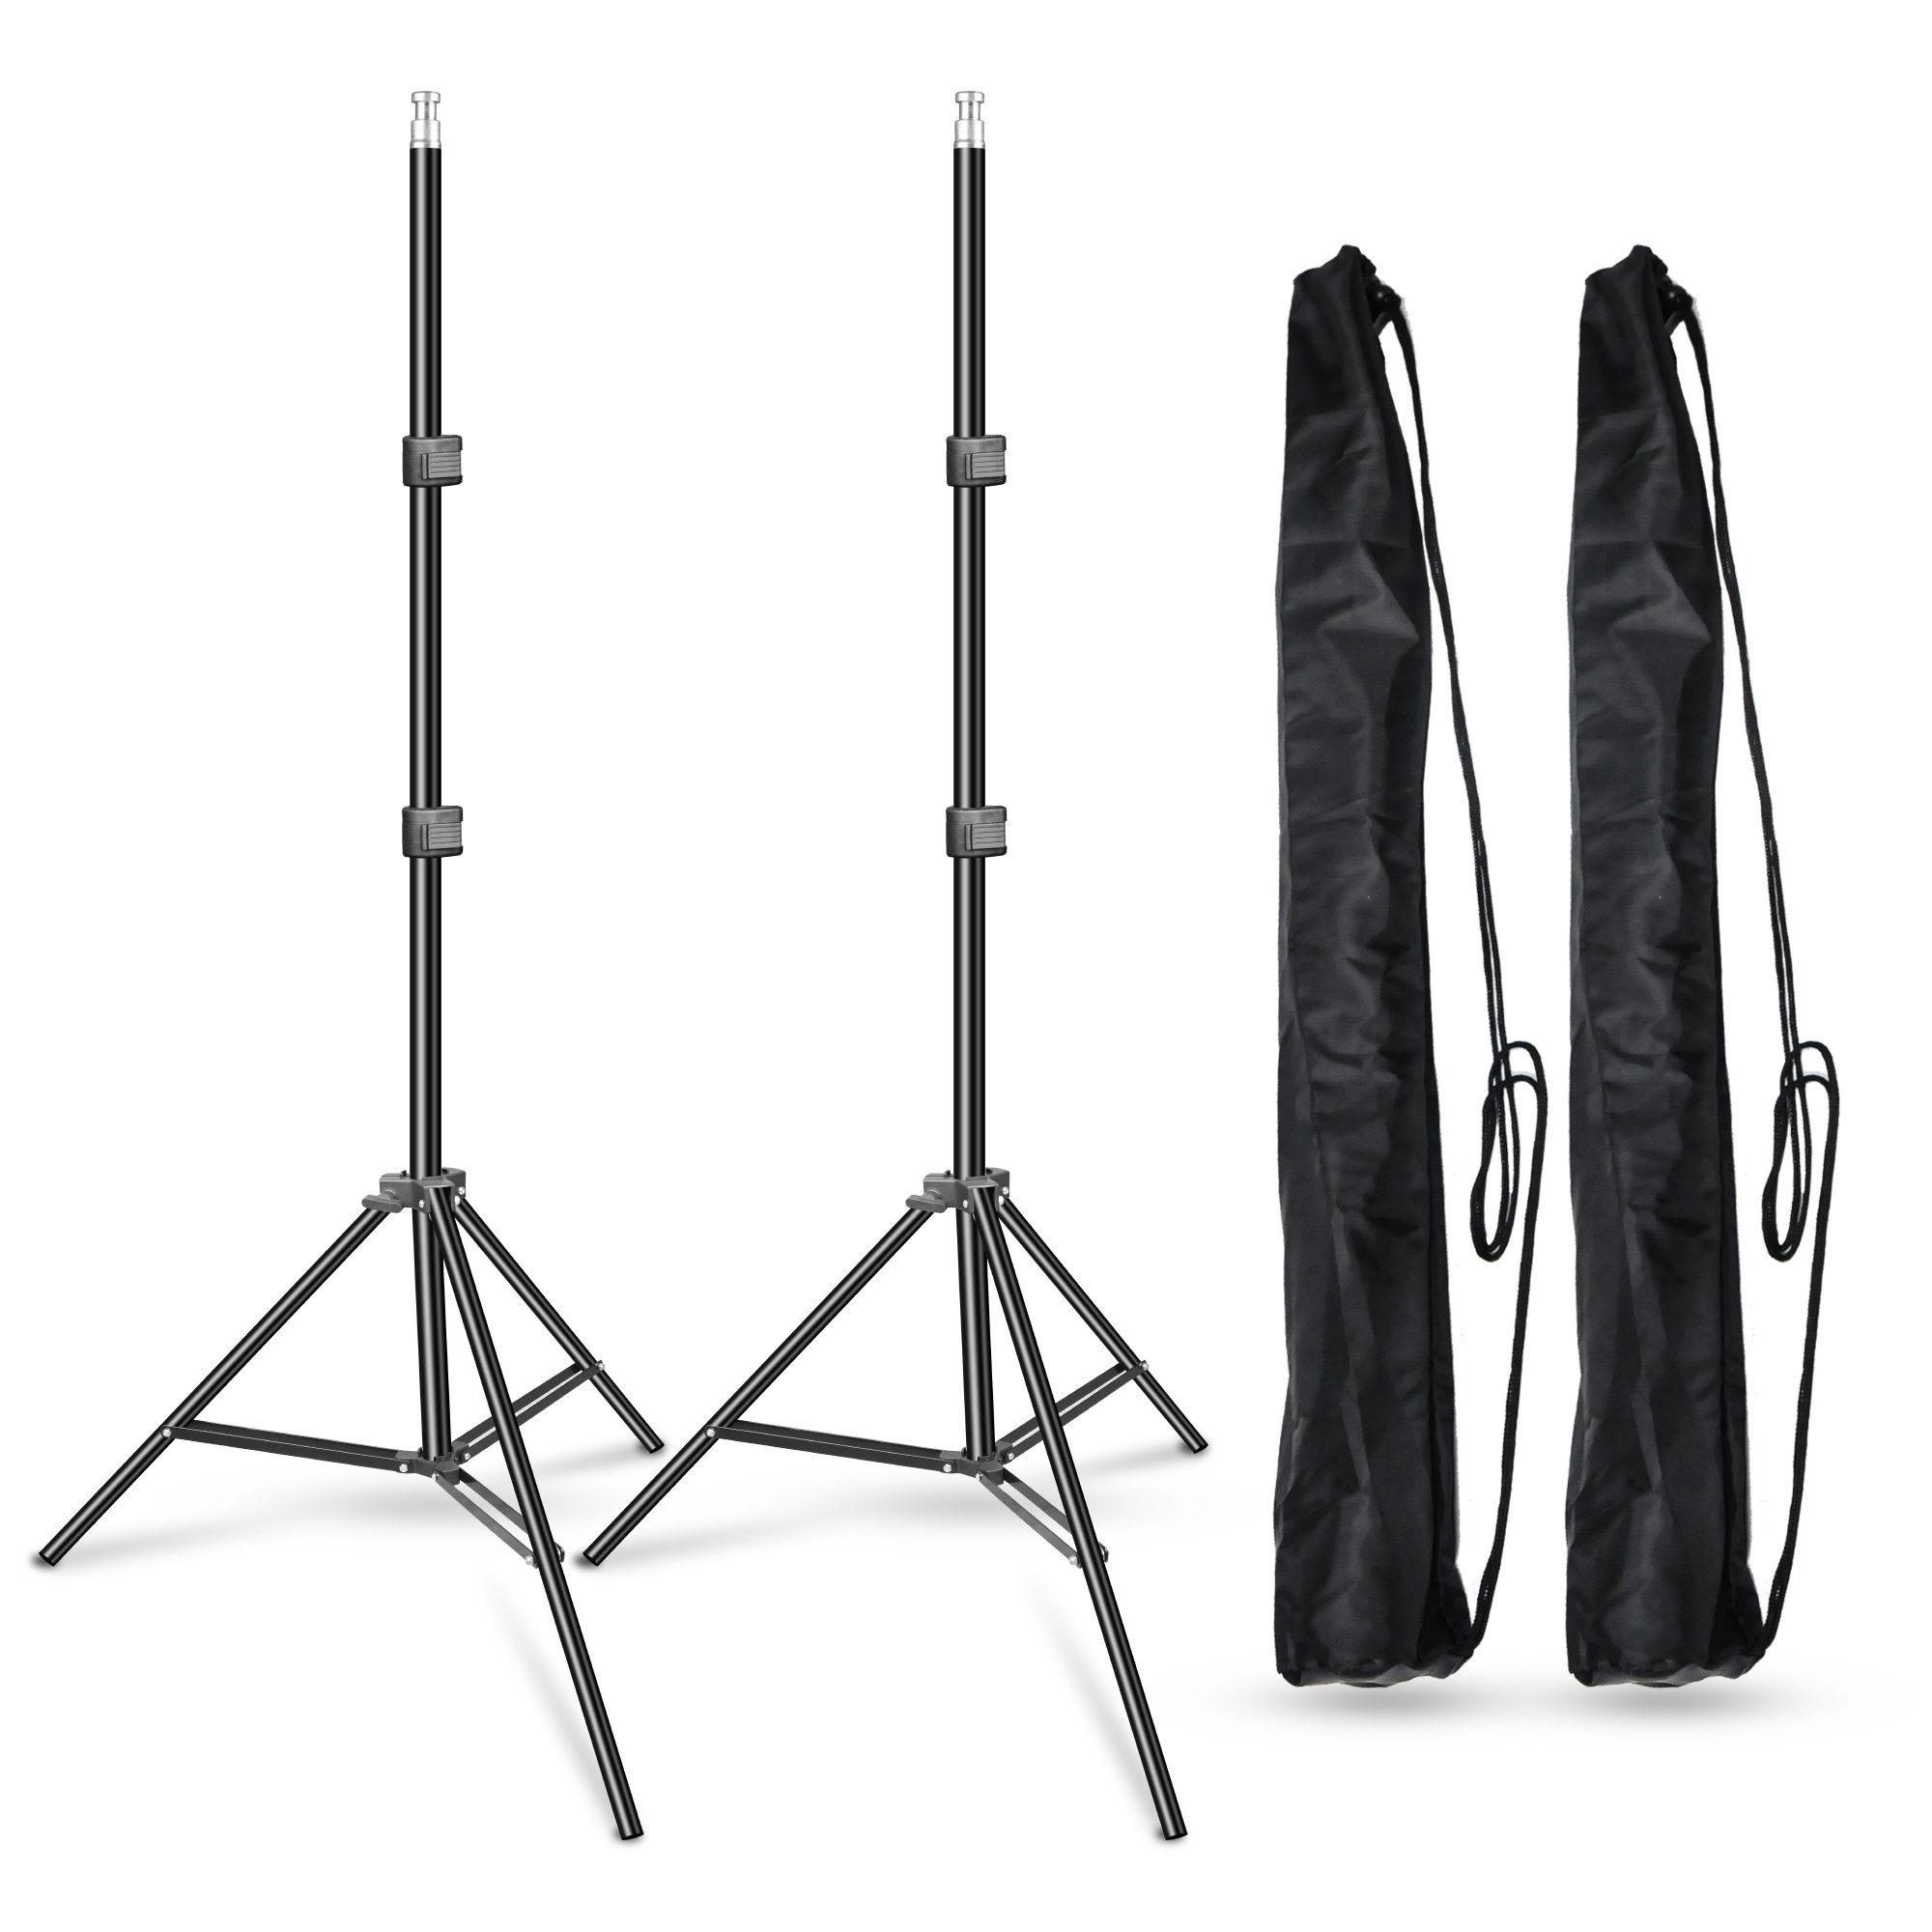 Emart 7ft Photography Light Stand with 5/8 inch Stud on Top, Only Used for Photo Video Studio Accessories - Umbrella, Softbox, Ring light, Reflector Stand (2 Pack)